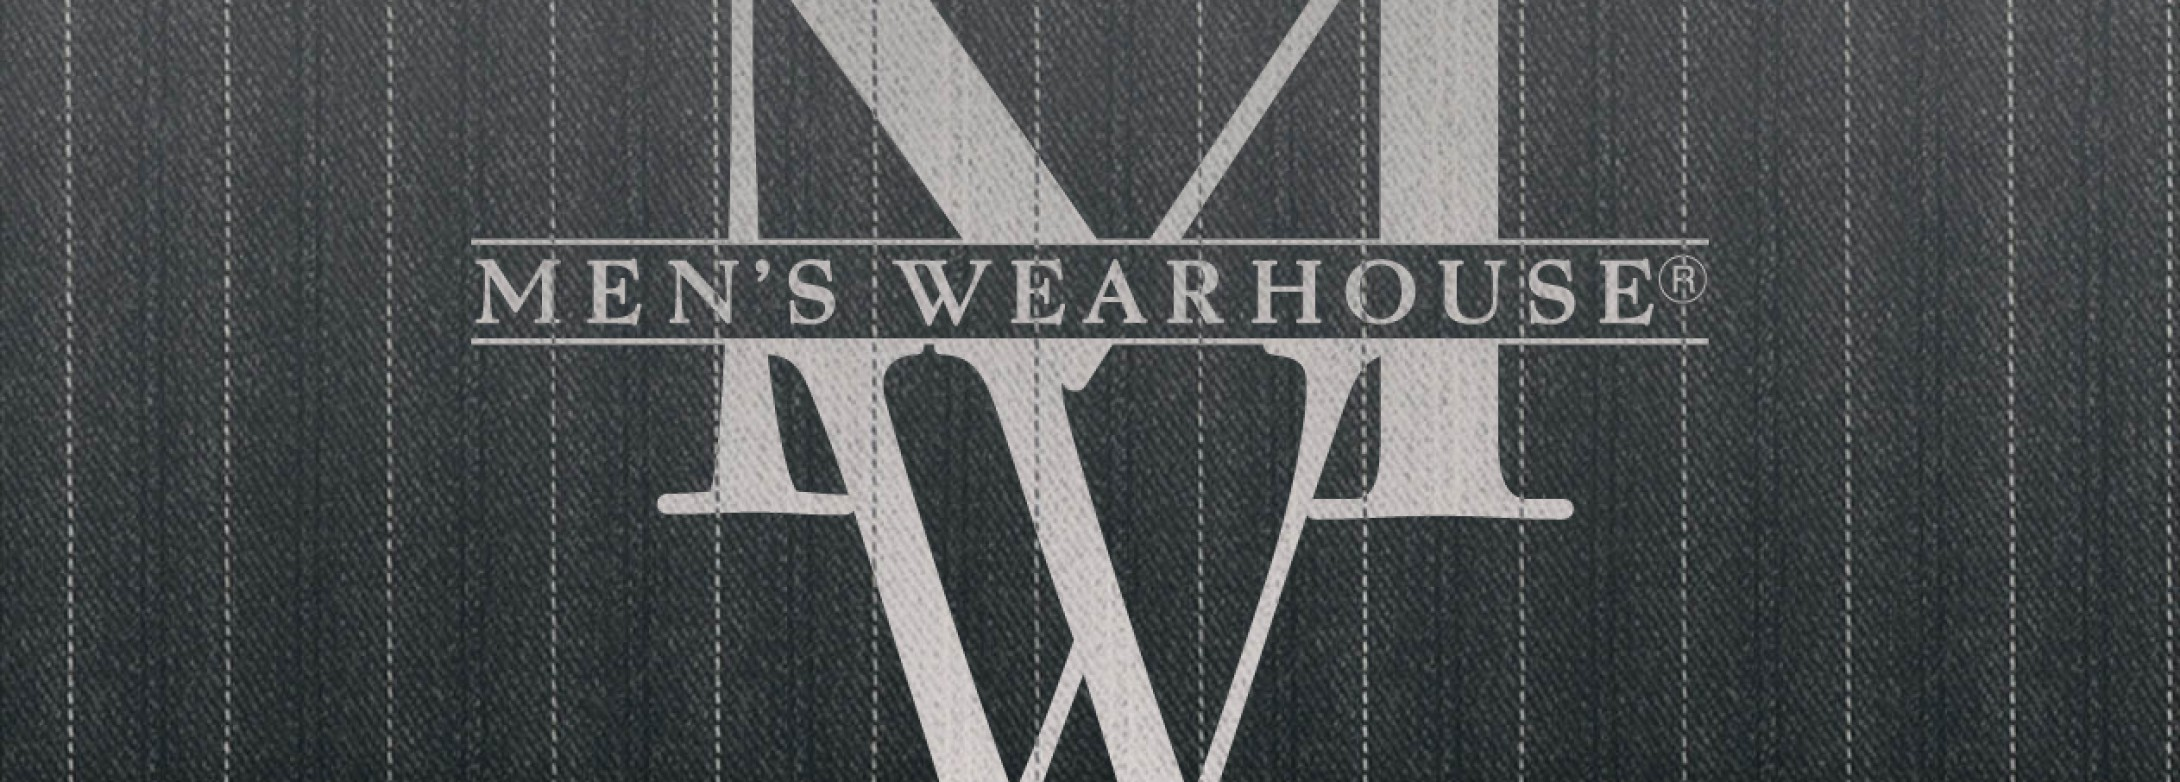 Branding Lessons For Men's Wearhouse